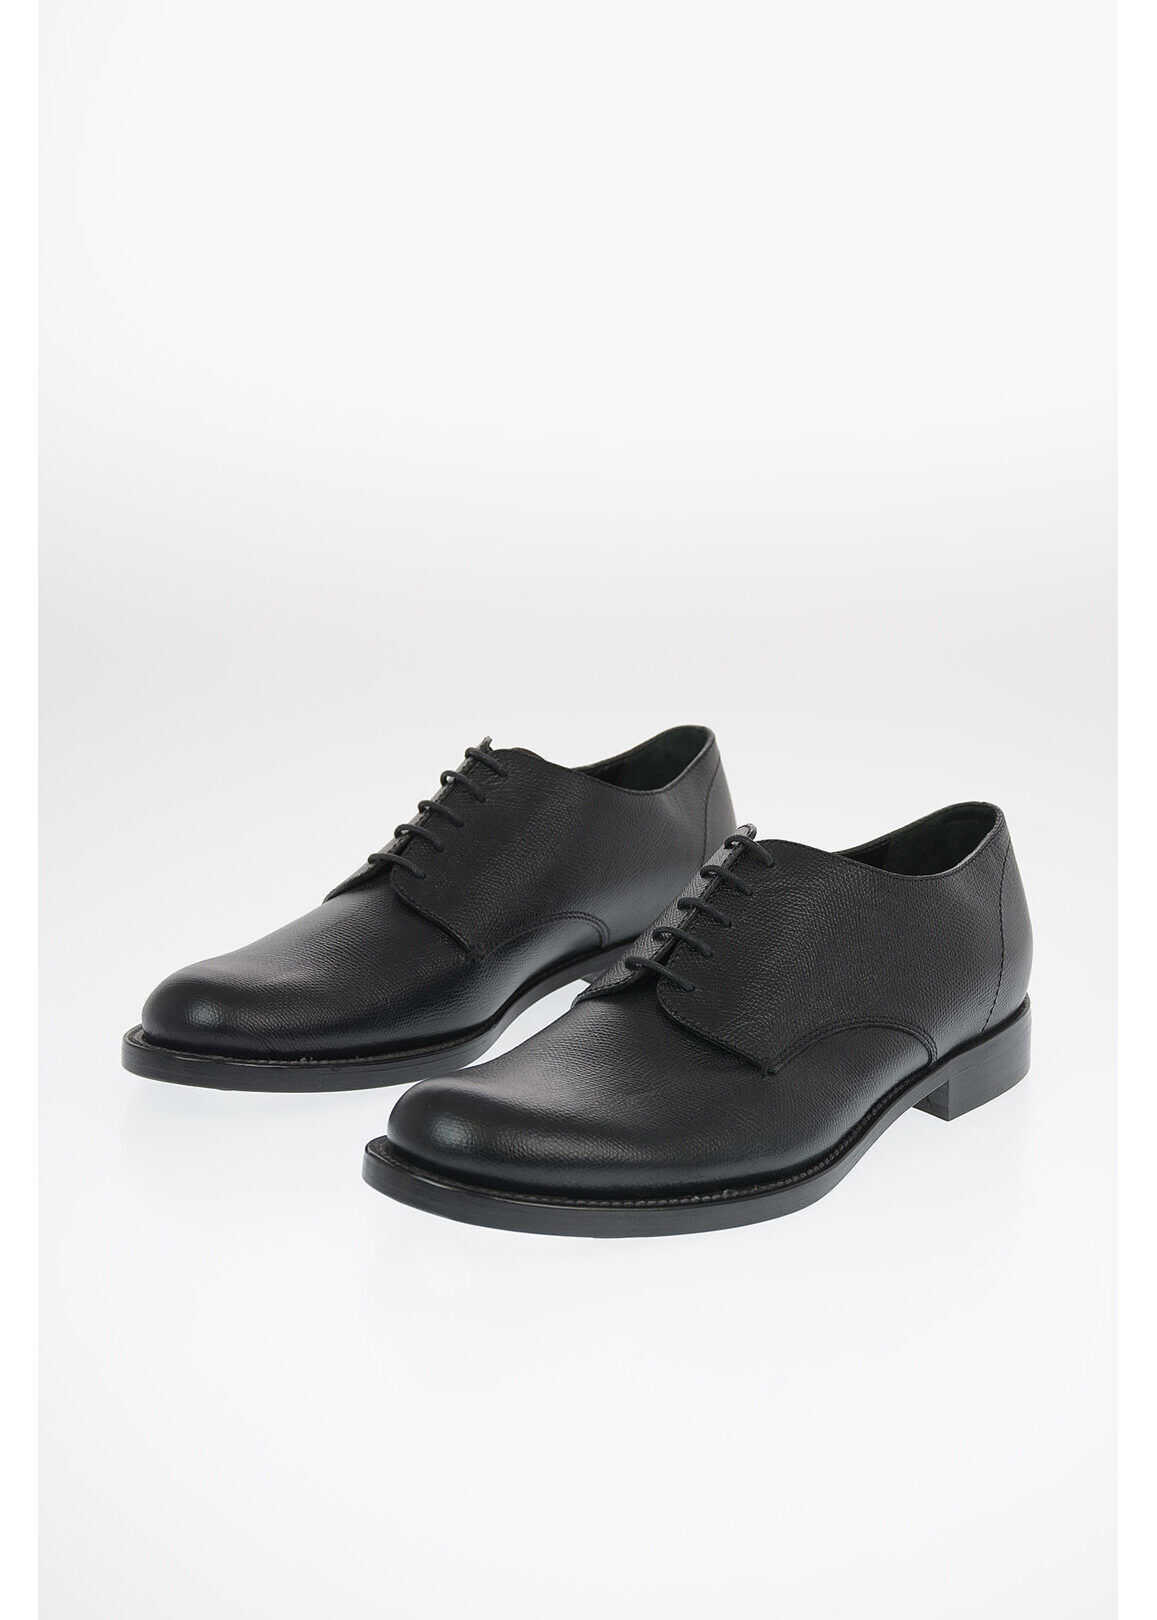 Marni leather Derby shoes BLACK imagine b-mall.ro